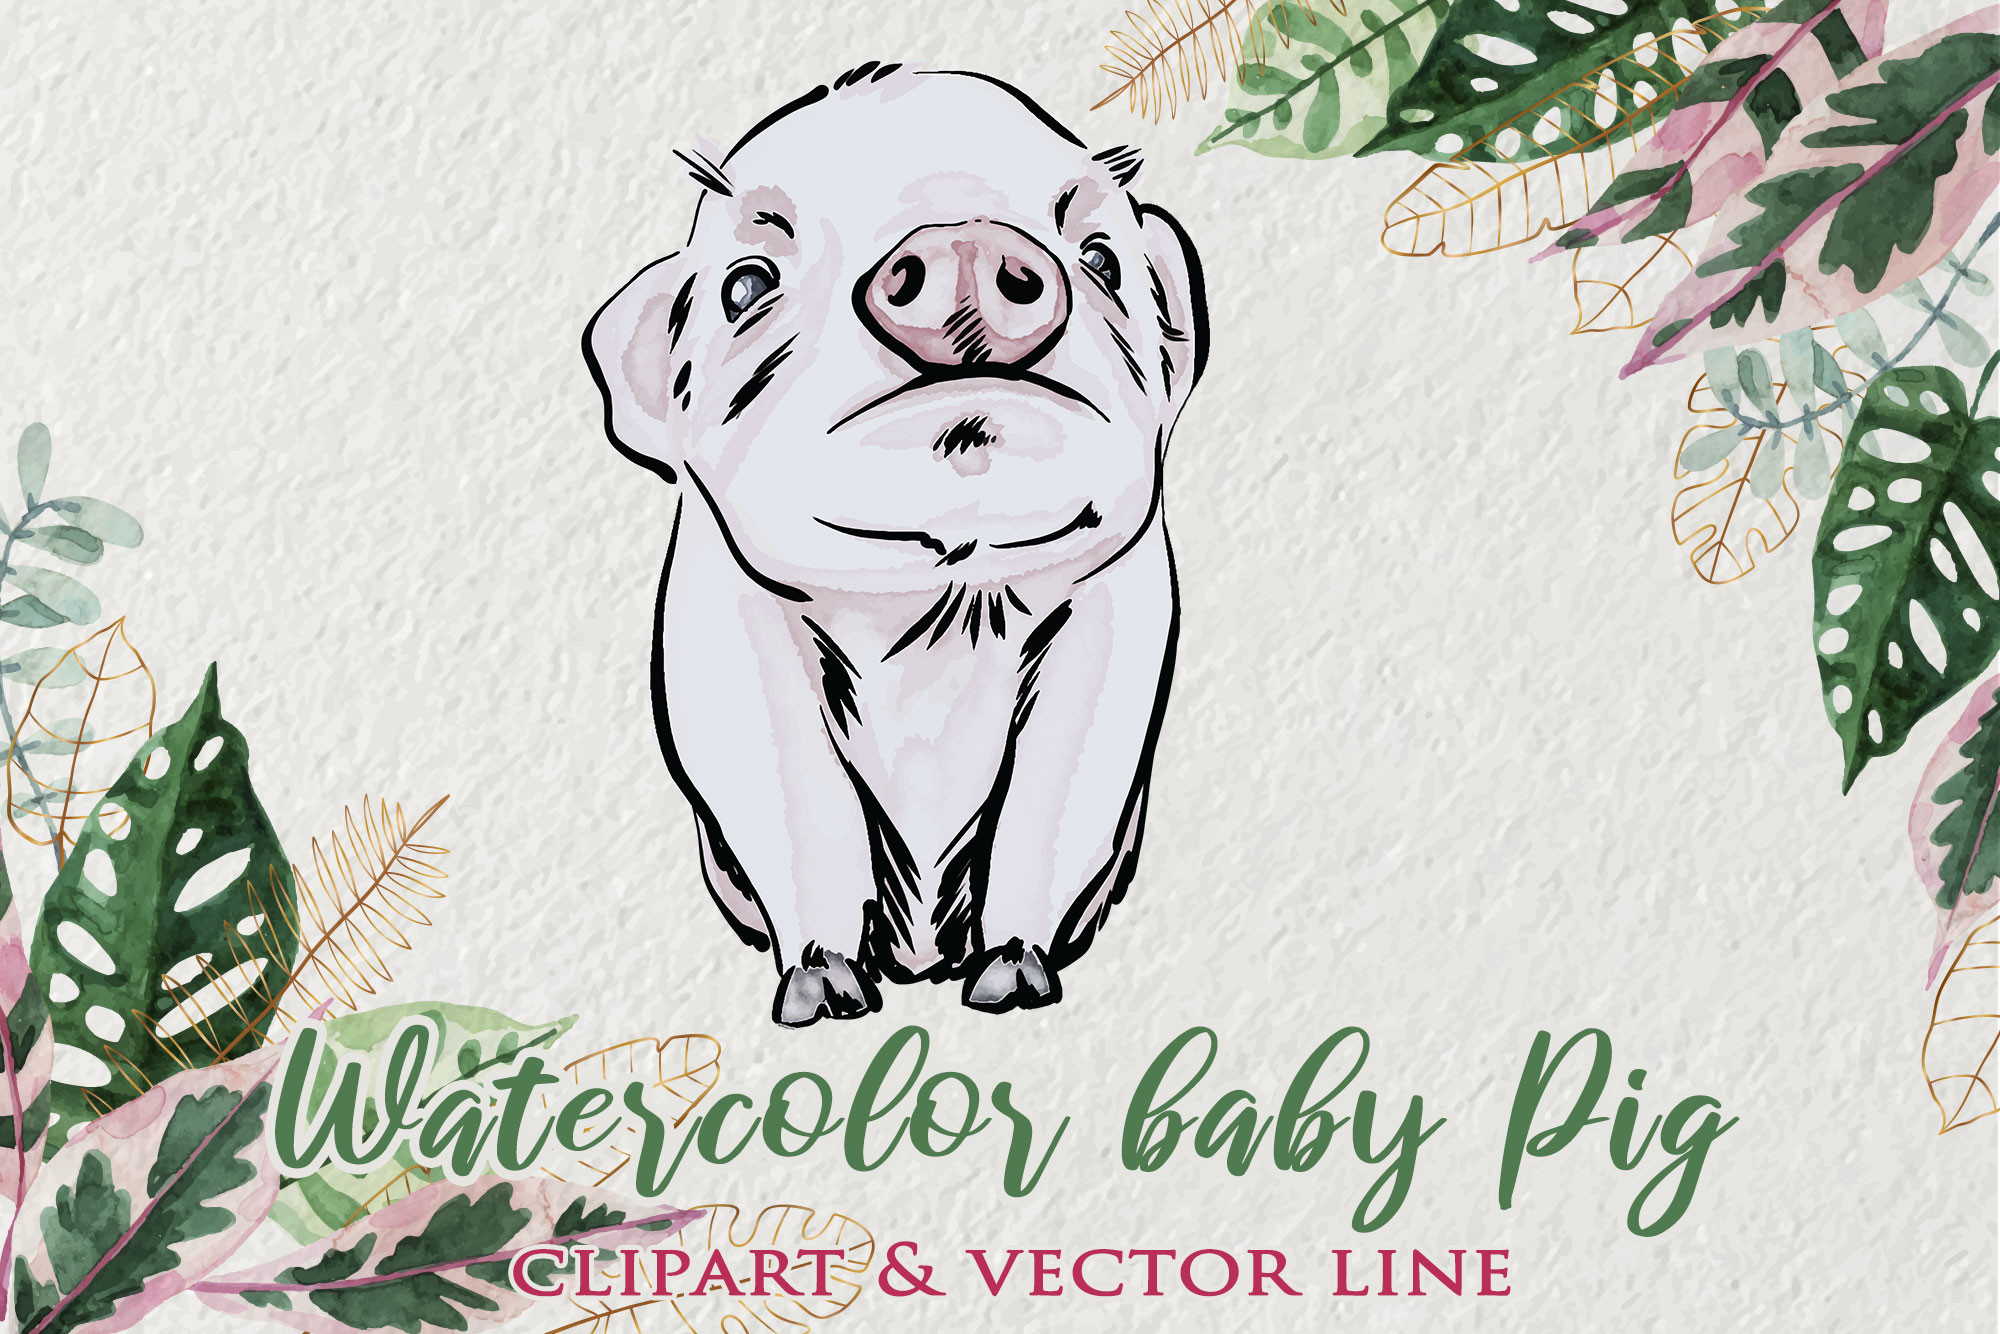 Watercolor Baby Pig Clipart SVG File